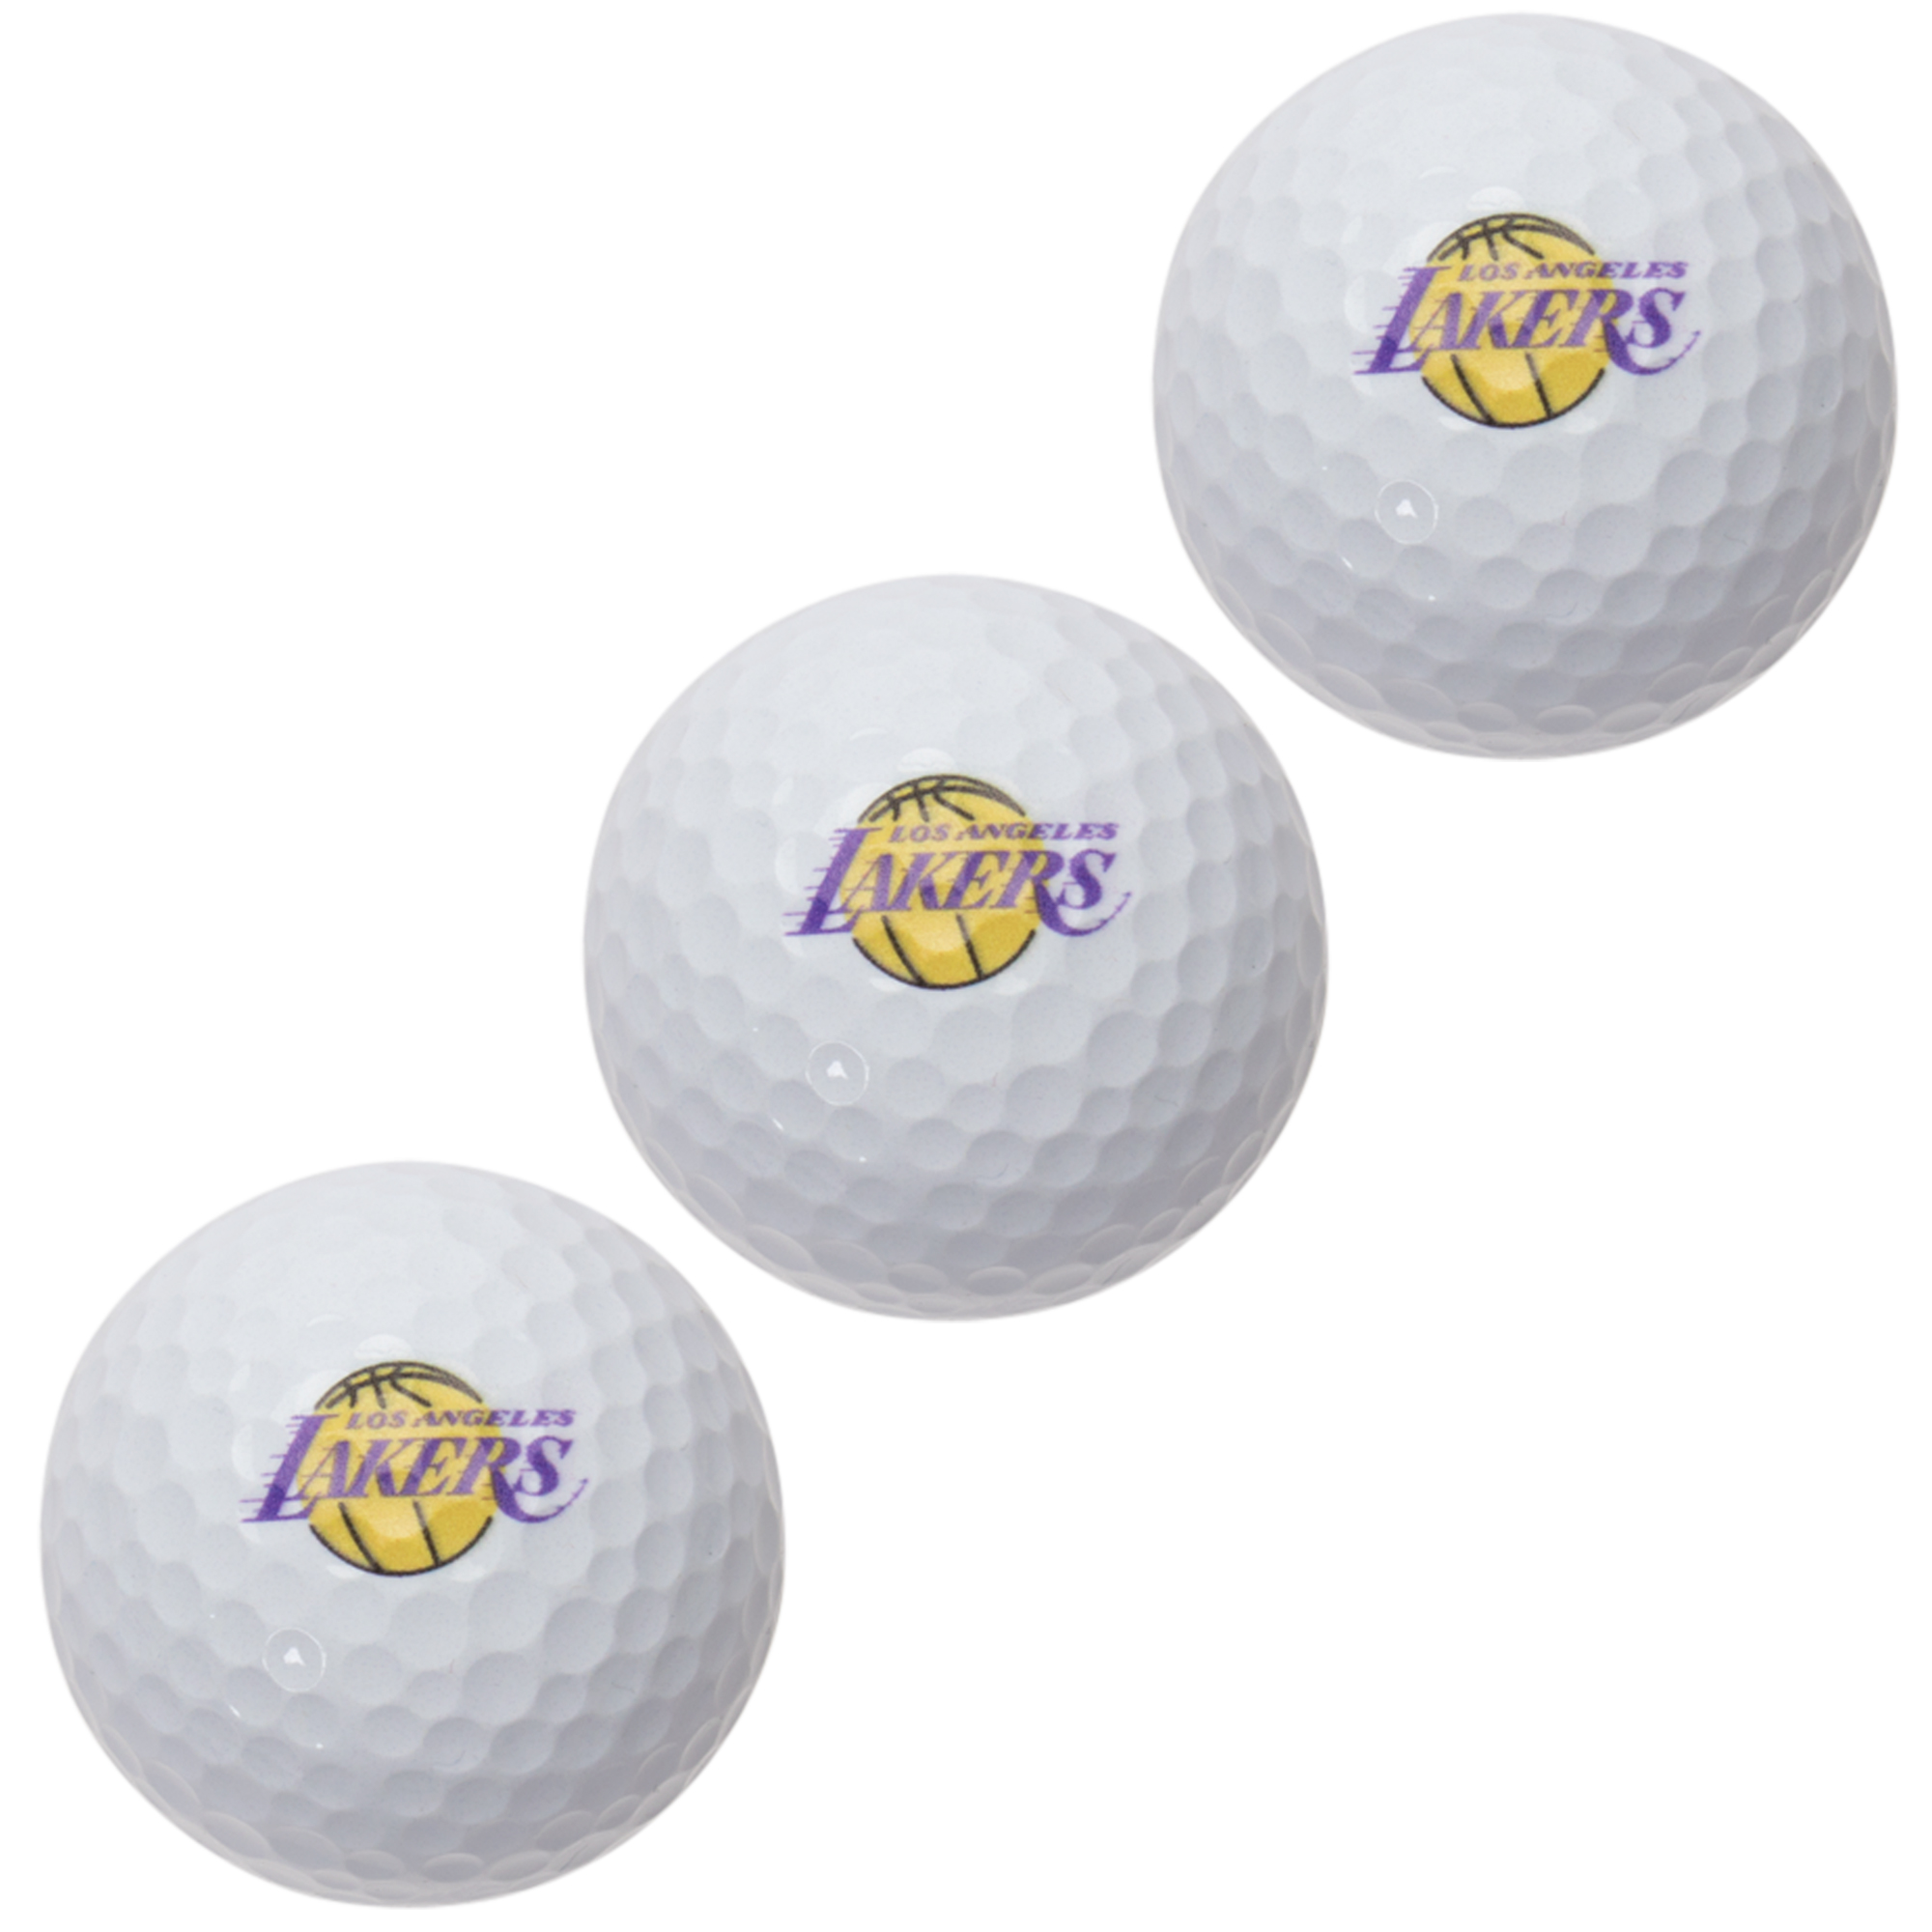 Los Angeles Lakers Pack of 3 Golf Balls - No Size